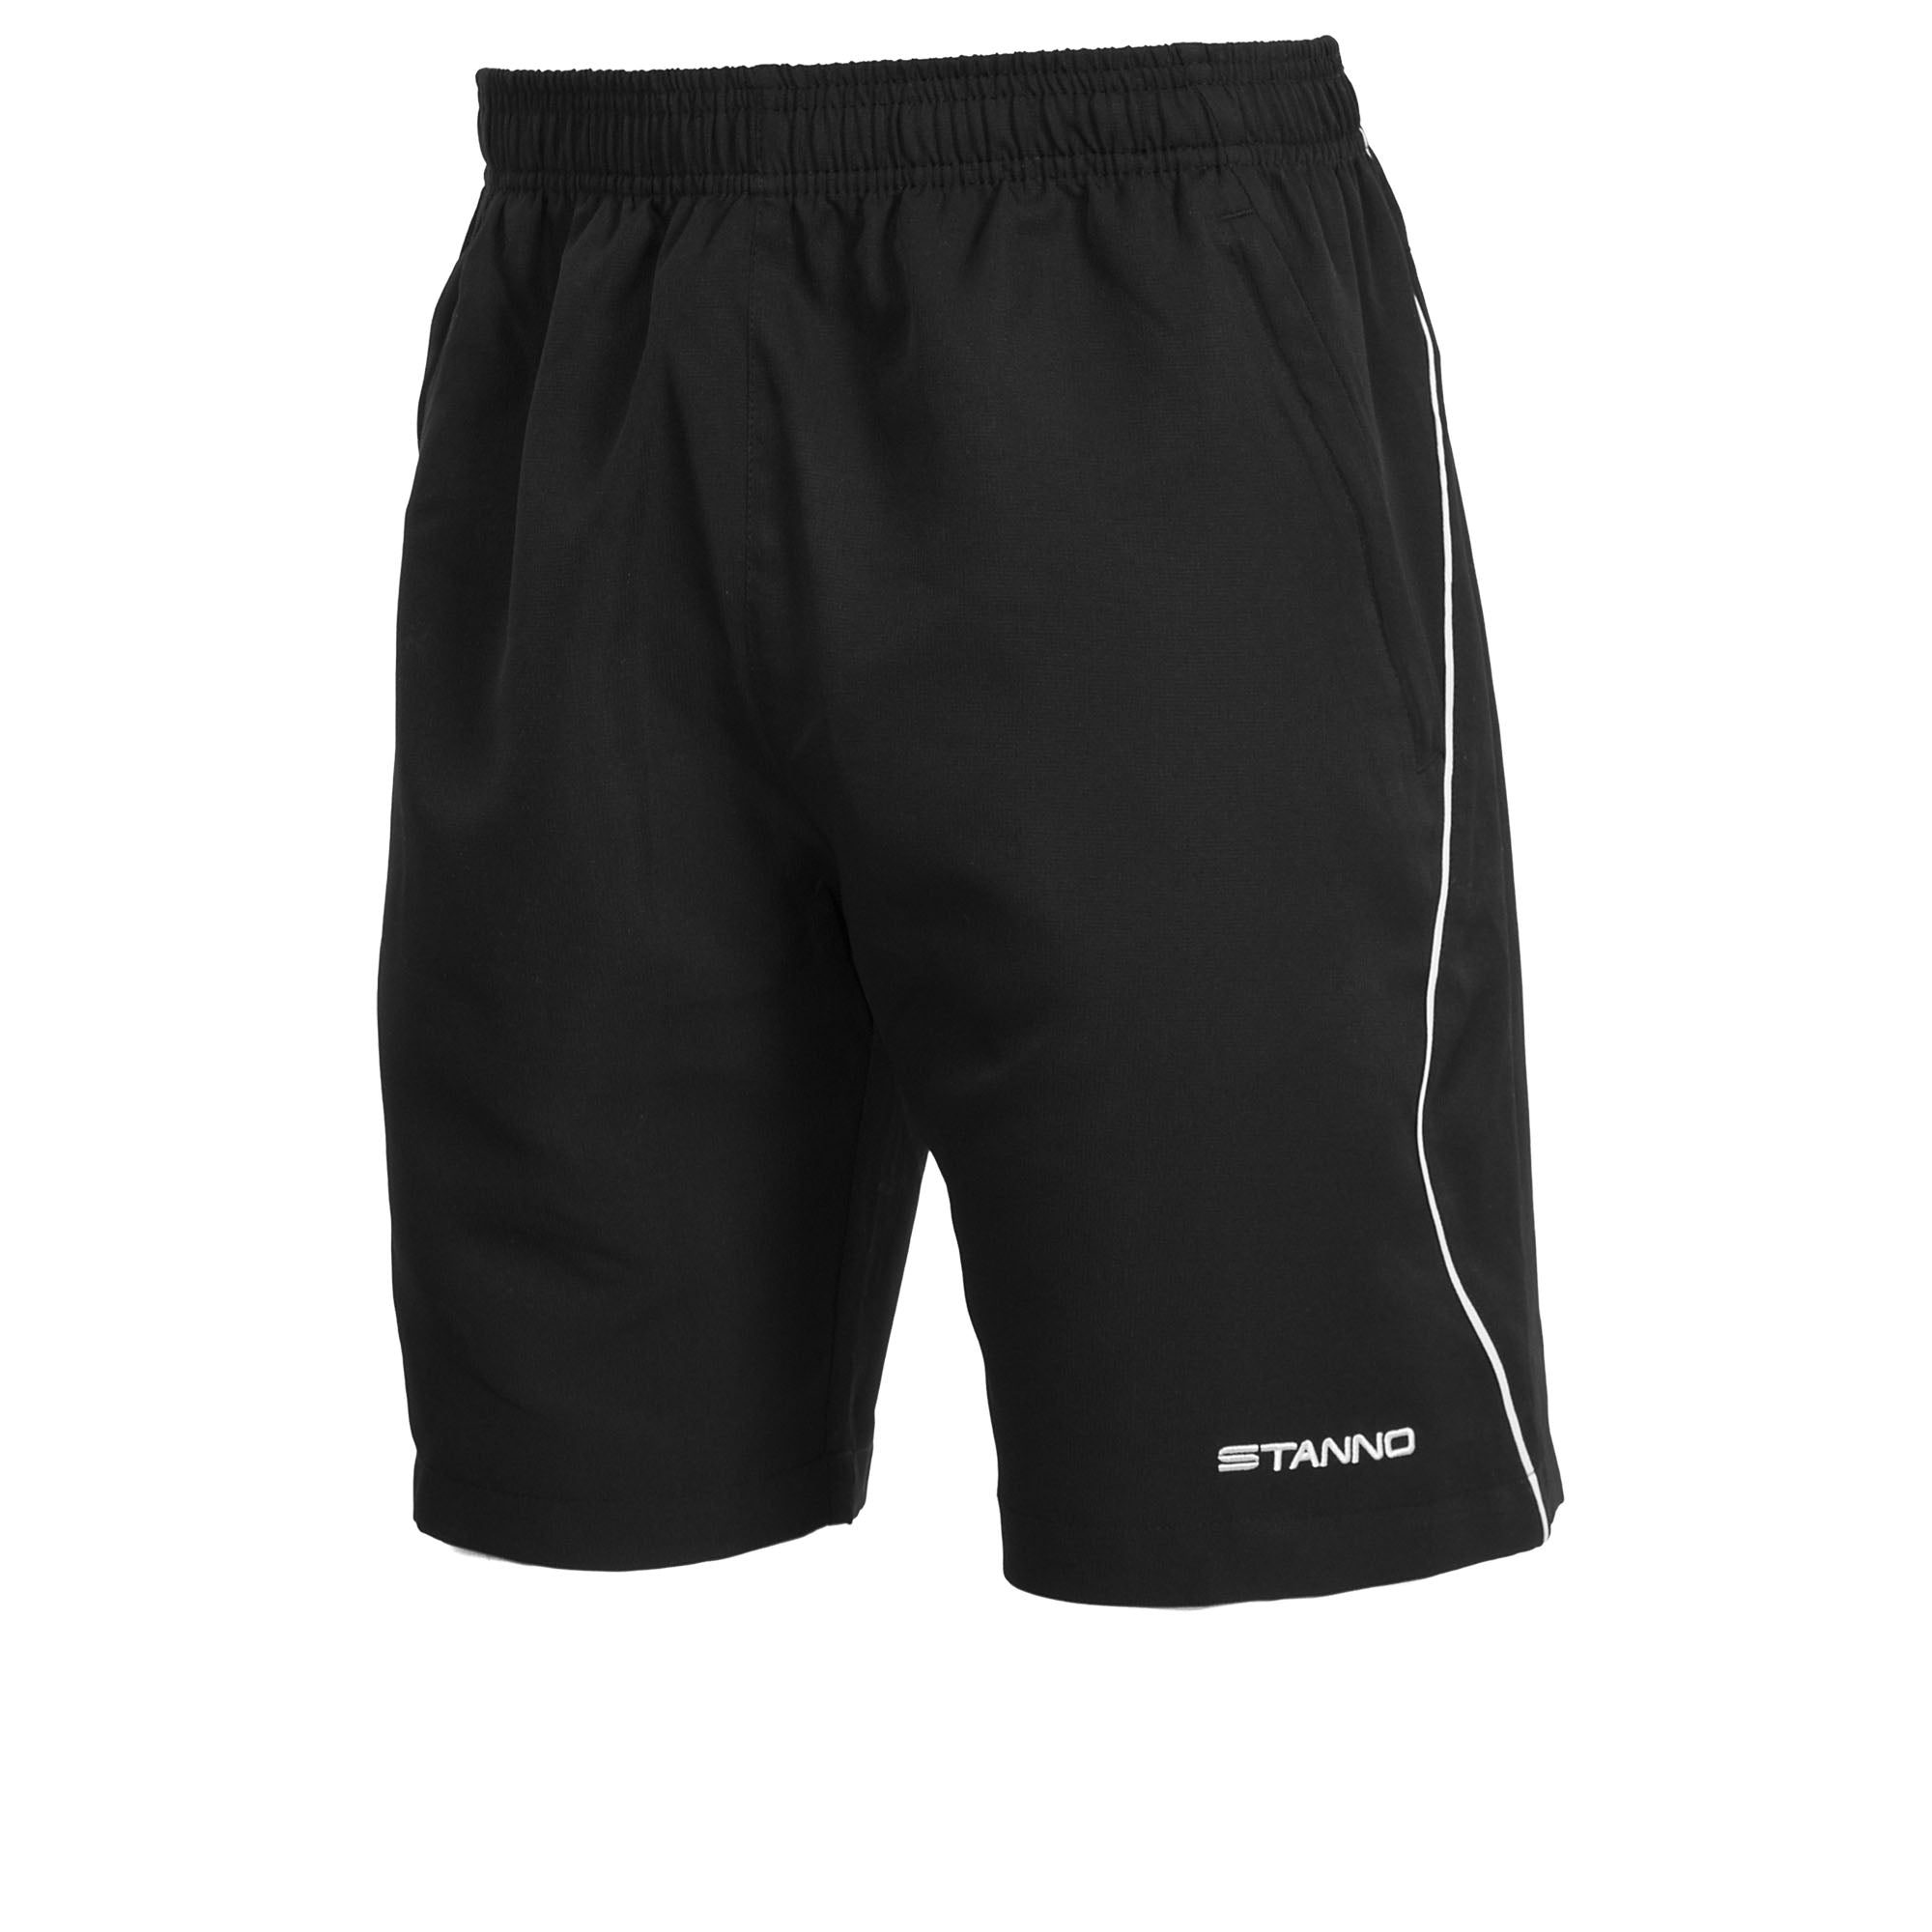 Stanno Centro Micro Shorts in black with white contrast line down the leg and white Stanno text logo at the bottom of the left leg